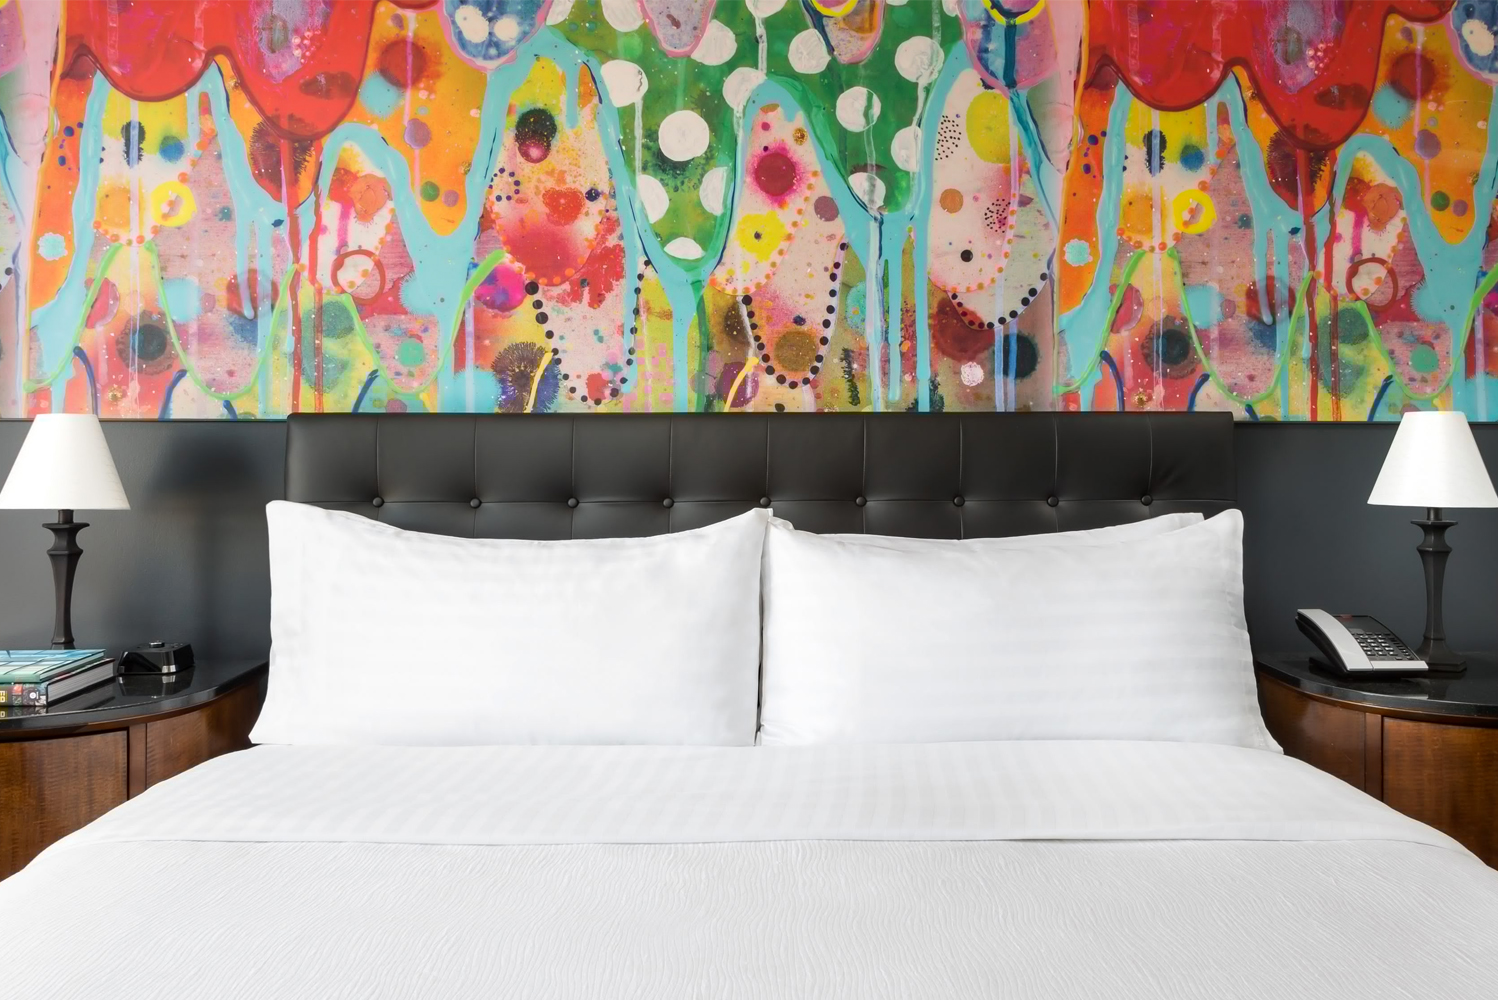 Studio Allston is a new 117-key art-centric hotel in Boston.